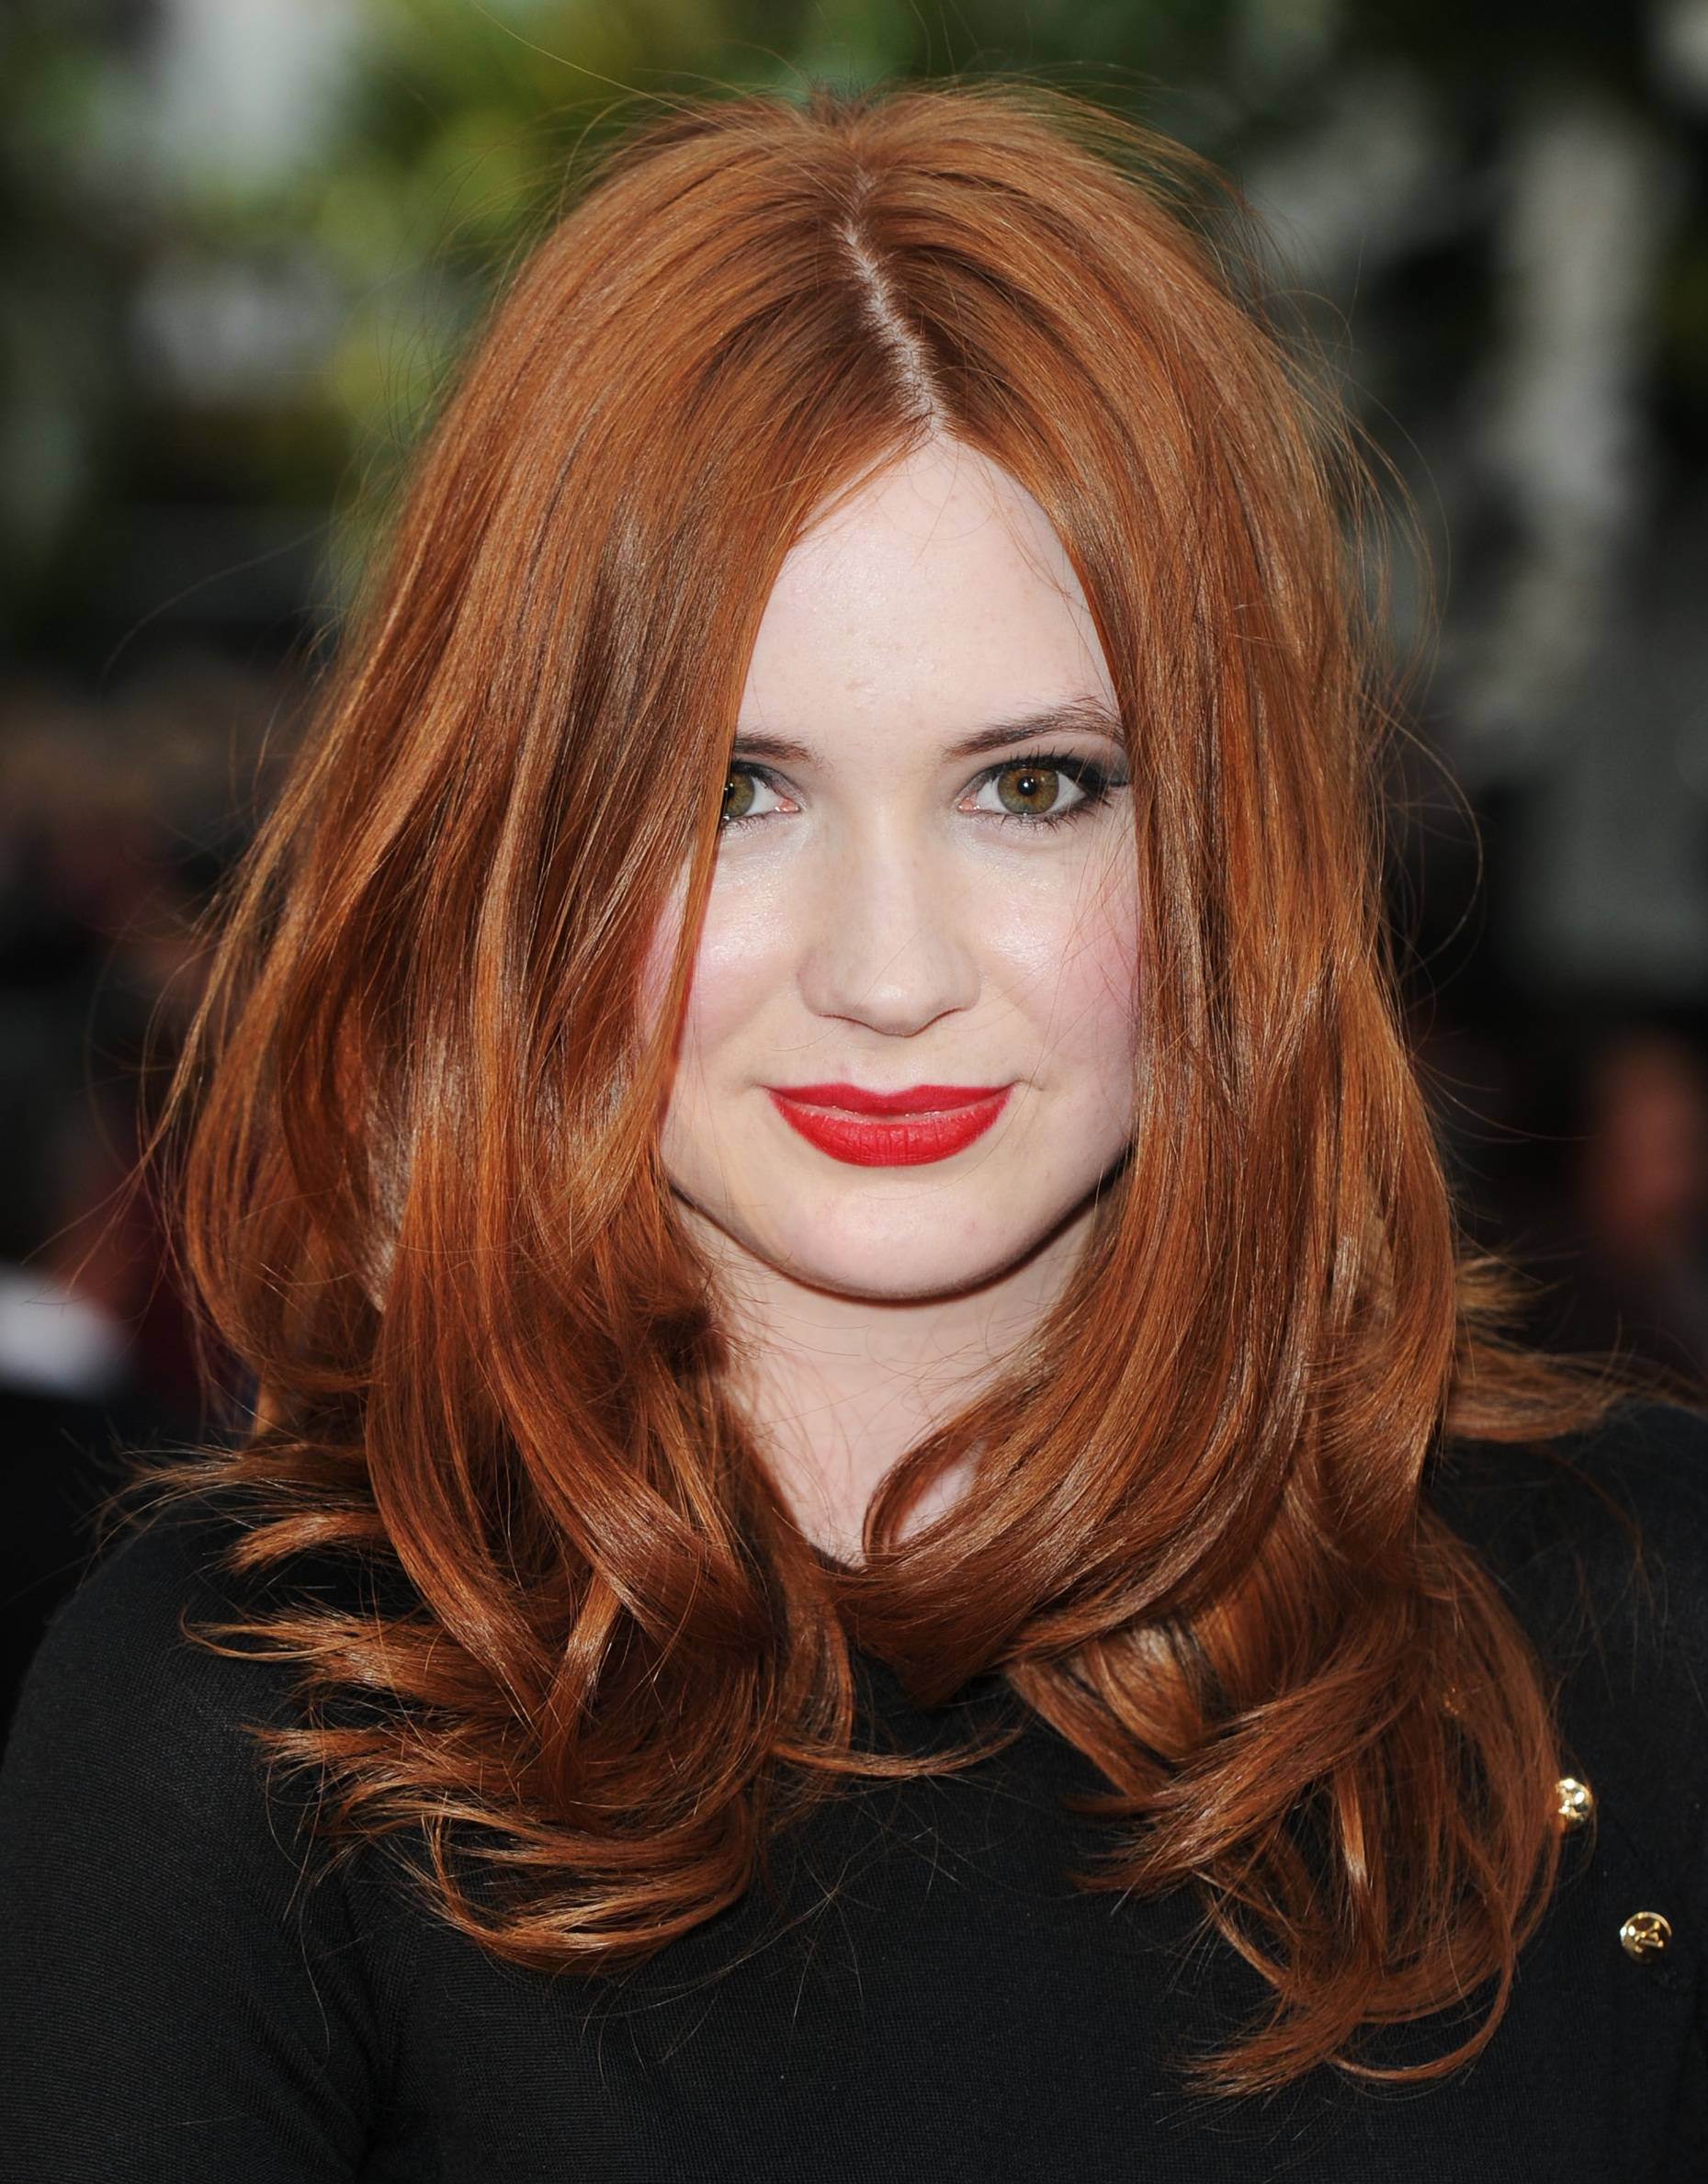 Spectacle Auburn Hair In The 35 Most Exciting Ways Hairstyles For